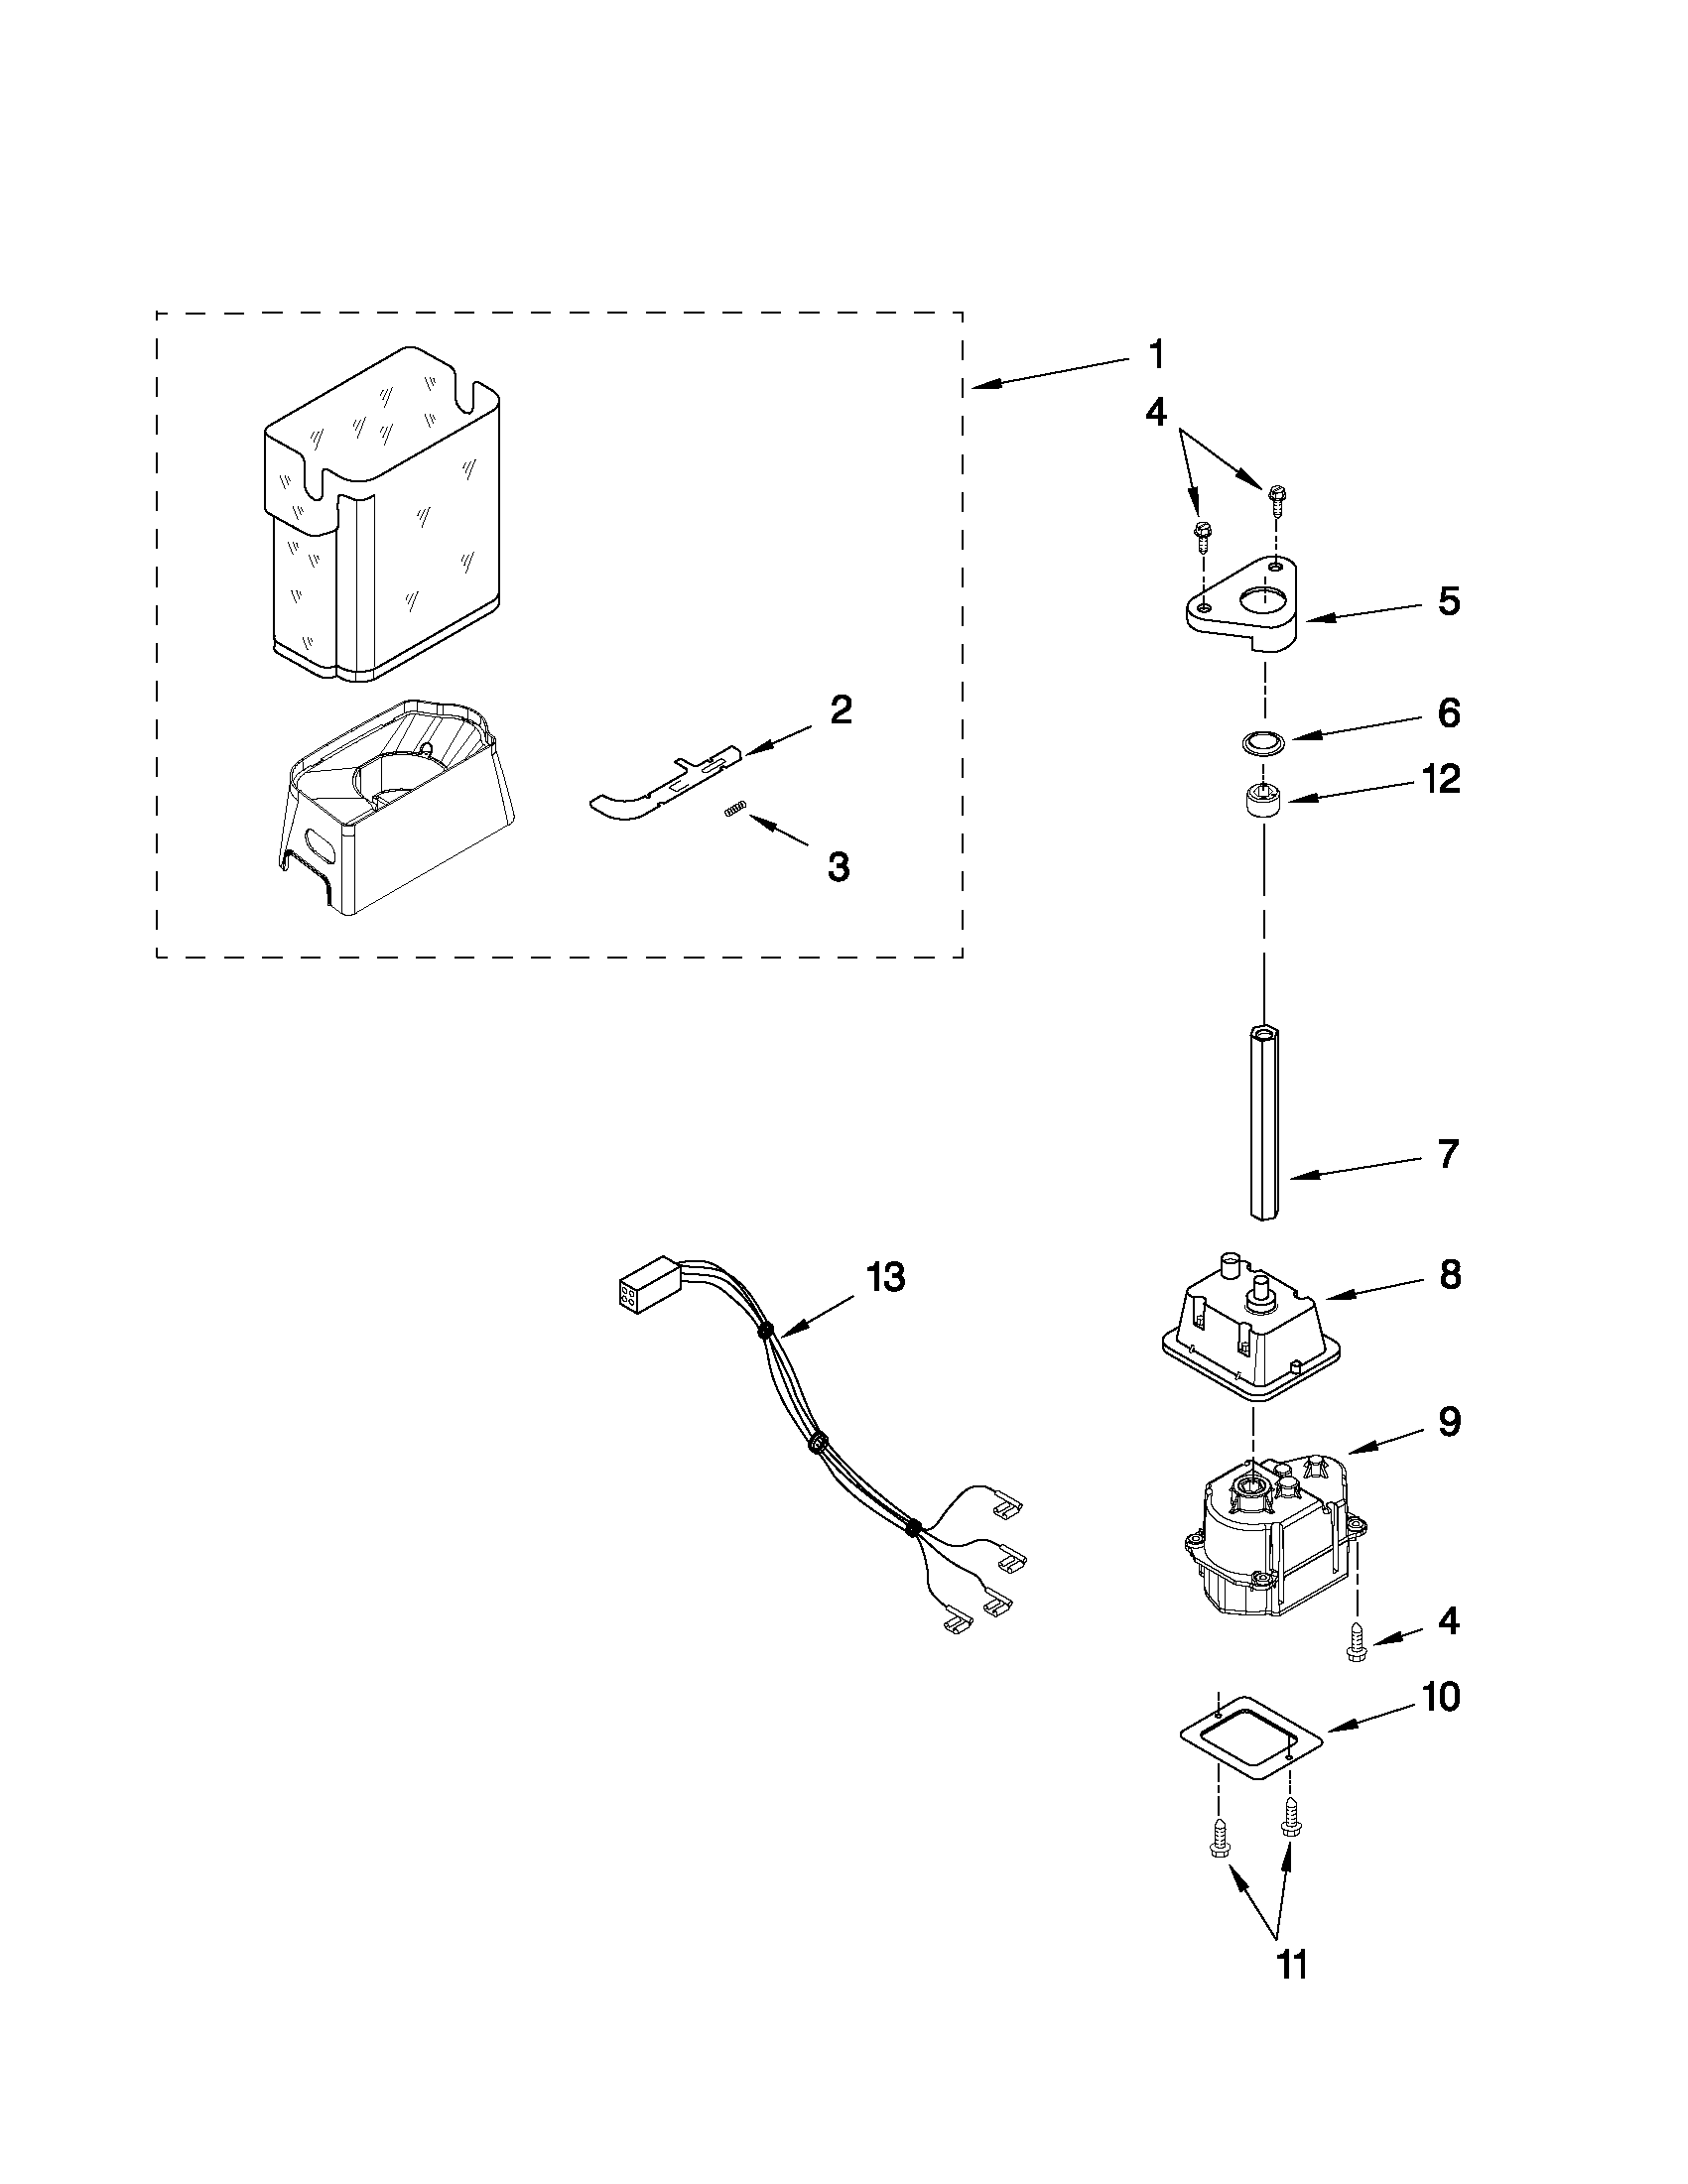 KitchenAid KSCK25FVWH03 motor and ice container parts diagram